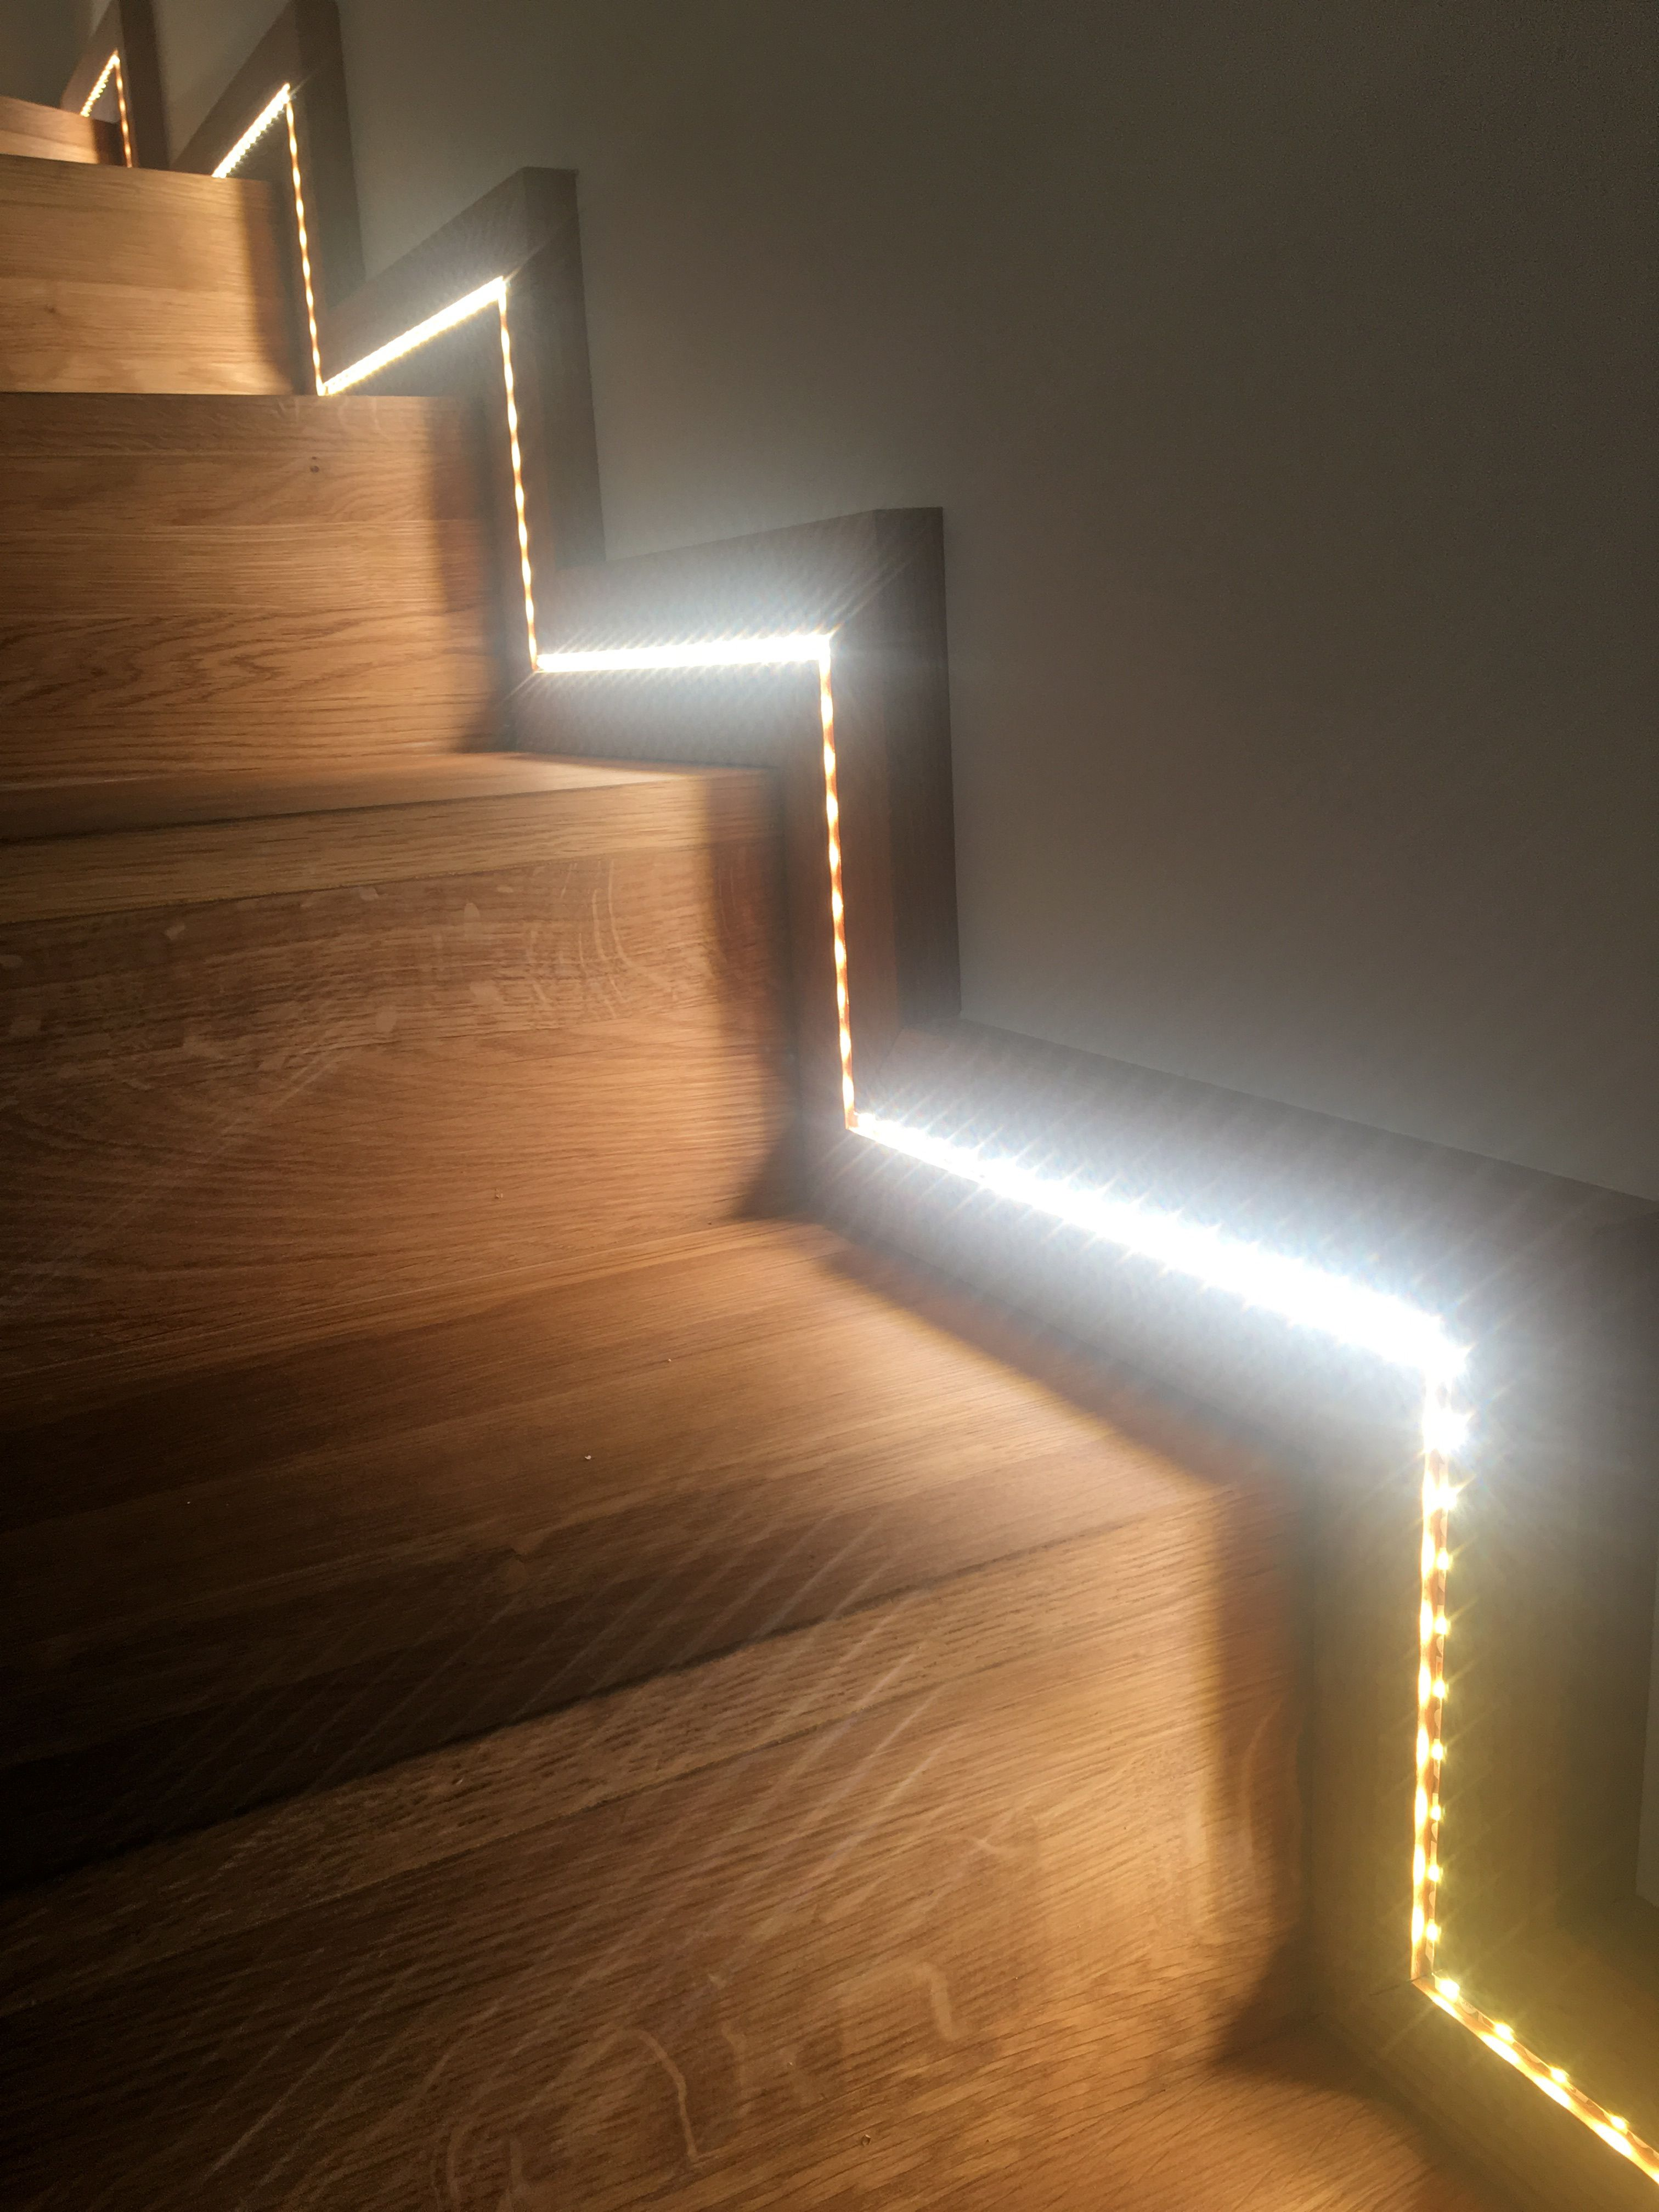 Ruban Eclairage Led Eclairage D Un Escalier Avec Ruban Led House Ideas In 2019 Led